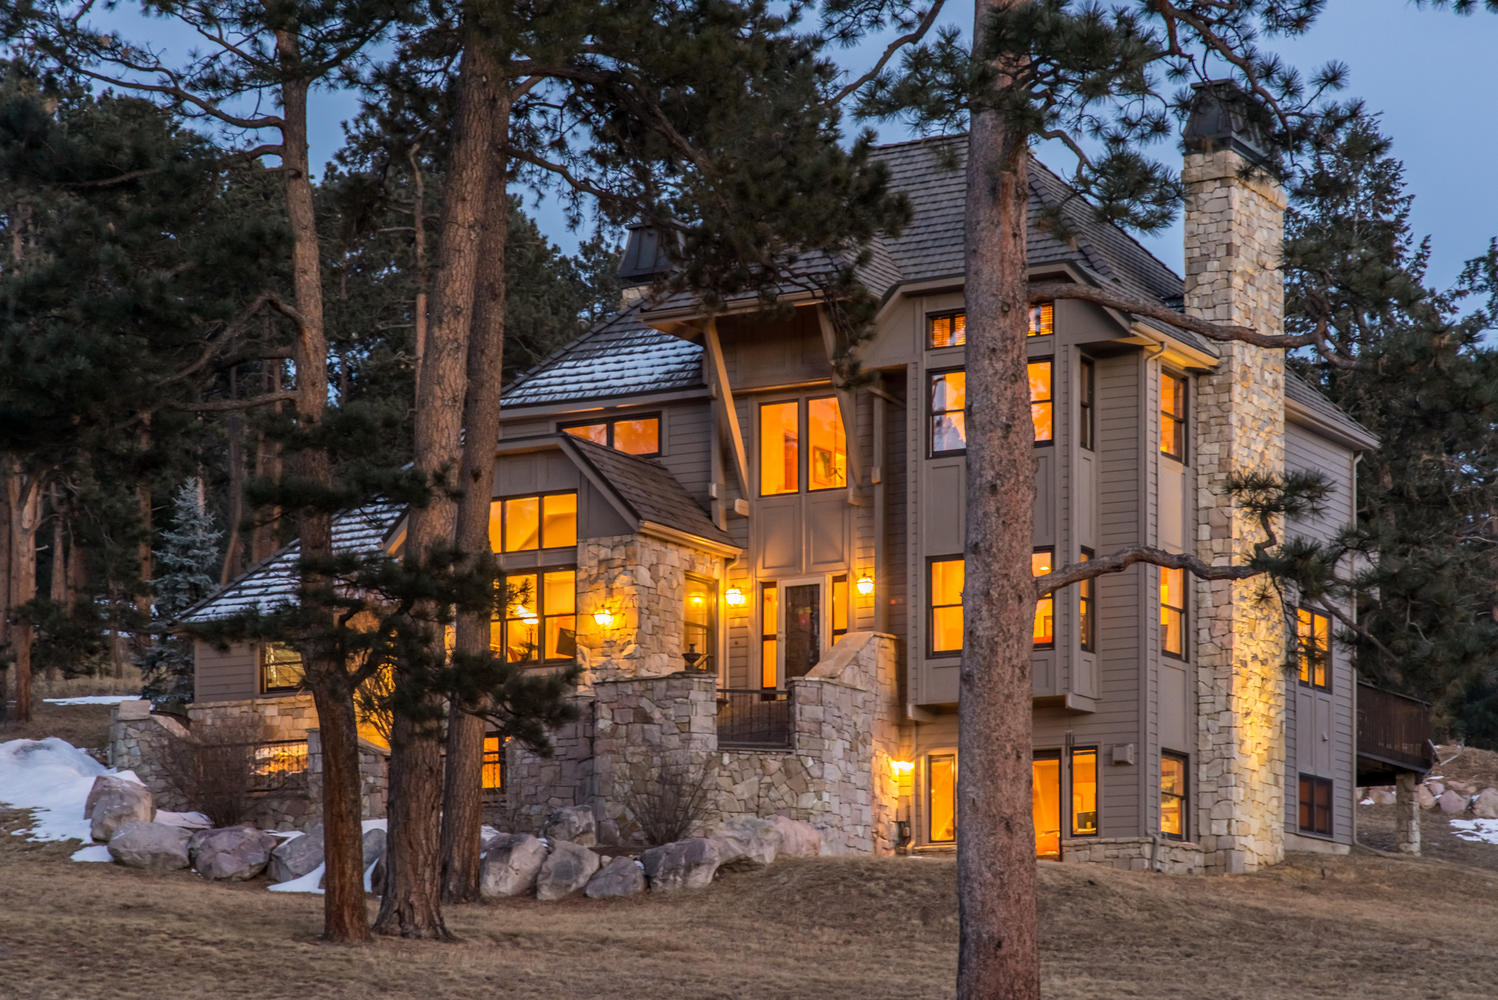 Частный односемейный дом для того Продажа на Executive retreat surrounded by towering pines & mountain views 7176 Timbers Drive Evergreen, Колорадо, 80439 Соединенные Штаты